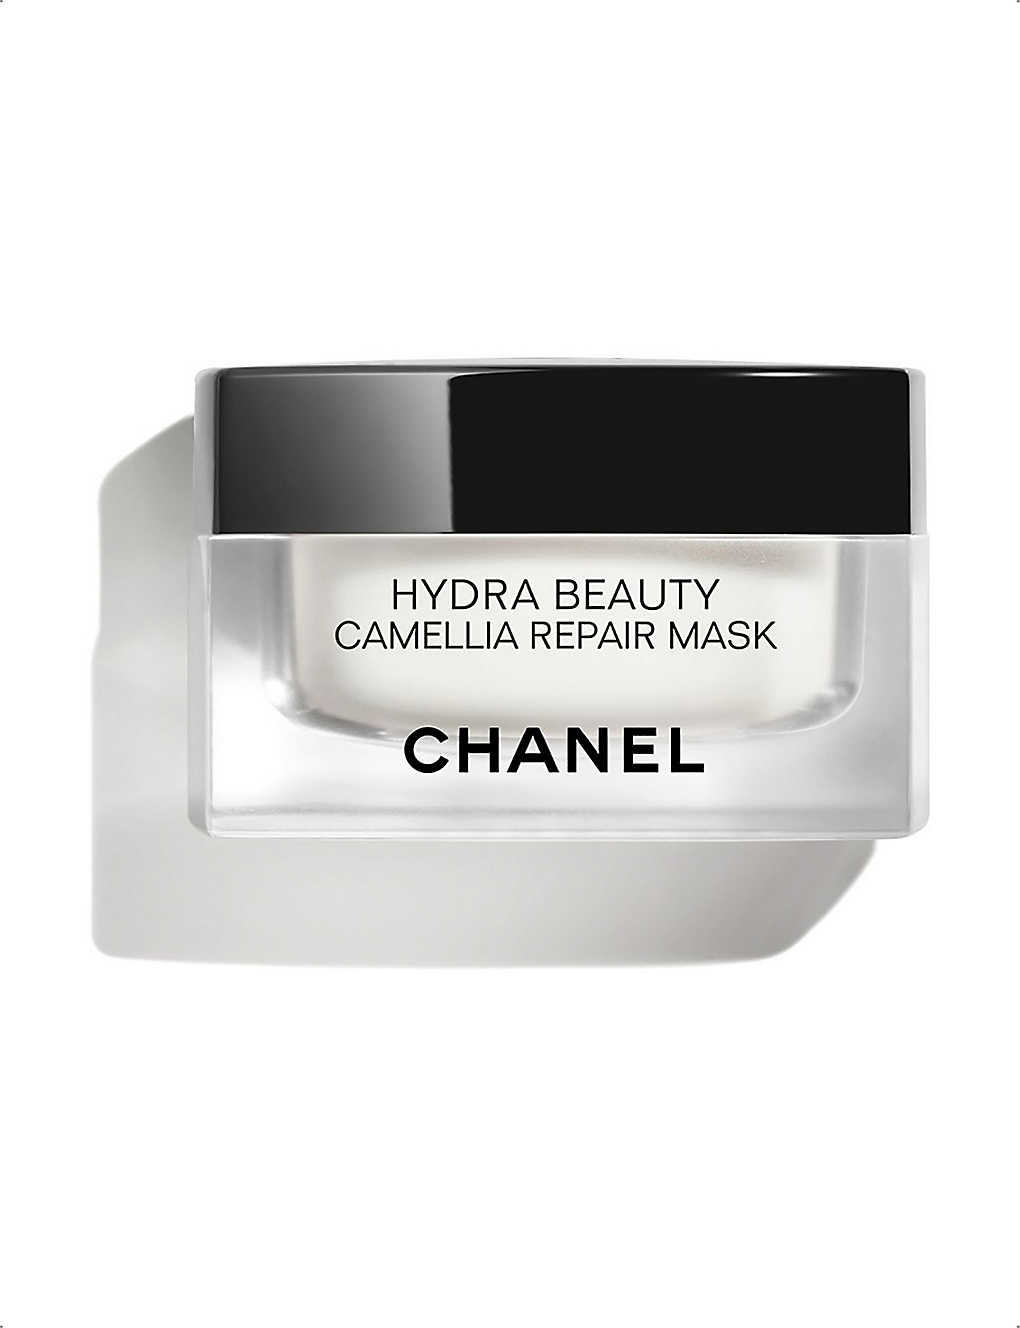 <STRONG>HYDRA BEAUTY</STRONG> Camellia repair mask 50g